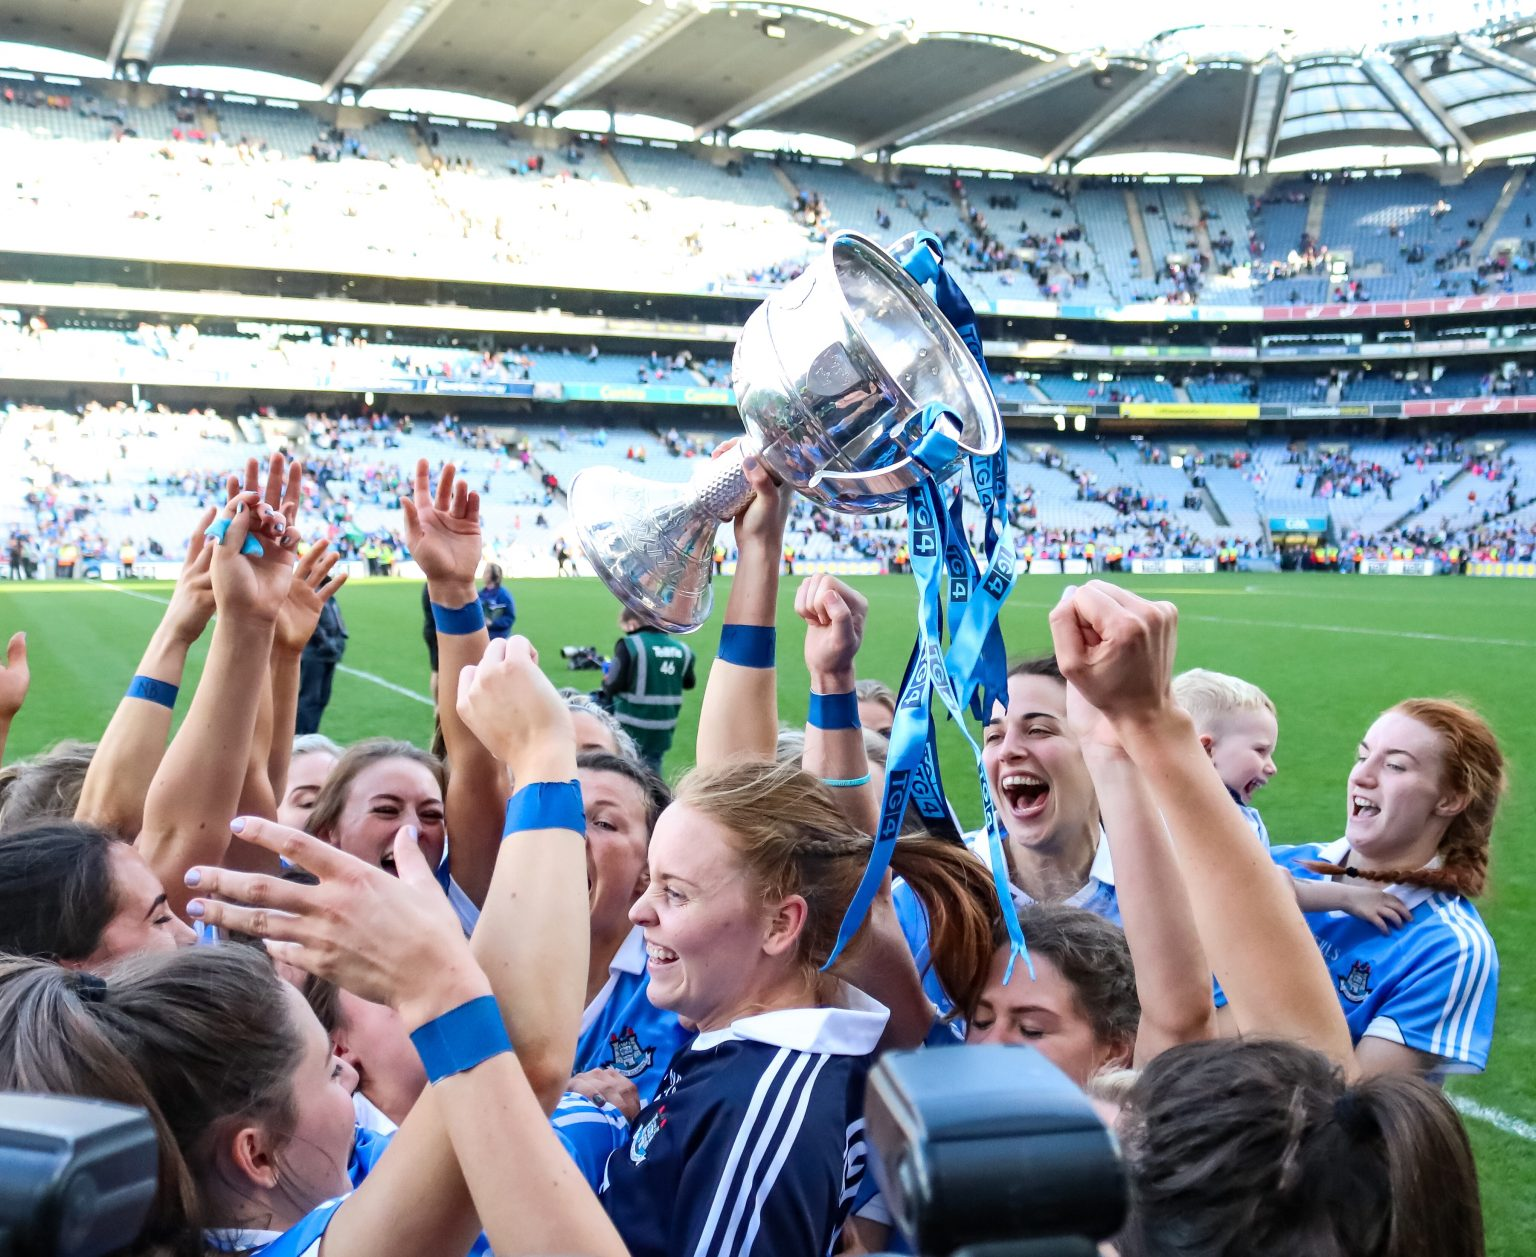 Dublin Senior Ladies Footballers Celebrating With The Brendan Martin Cup After Their All Ireland Final Win In Croke Park